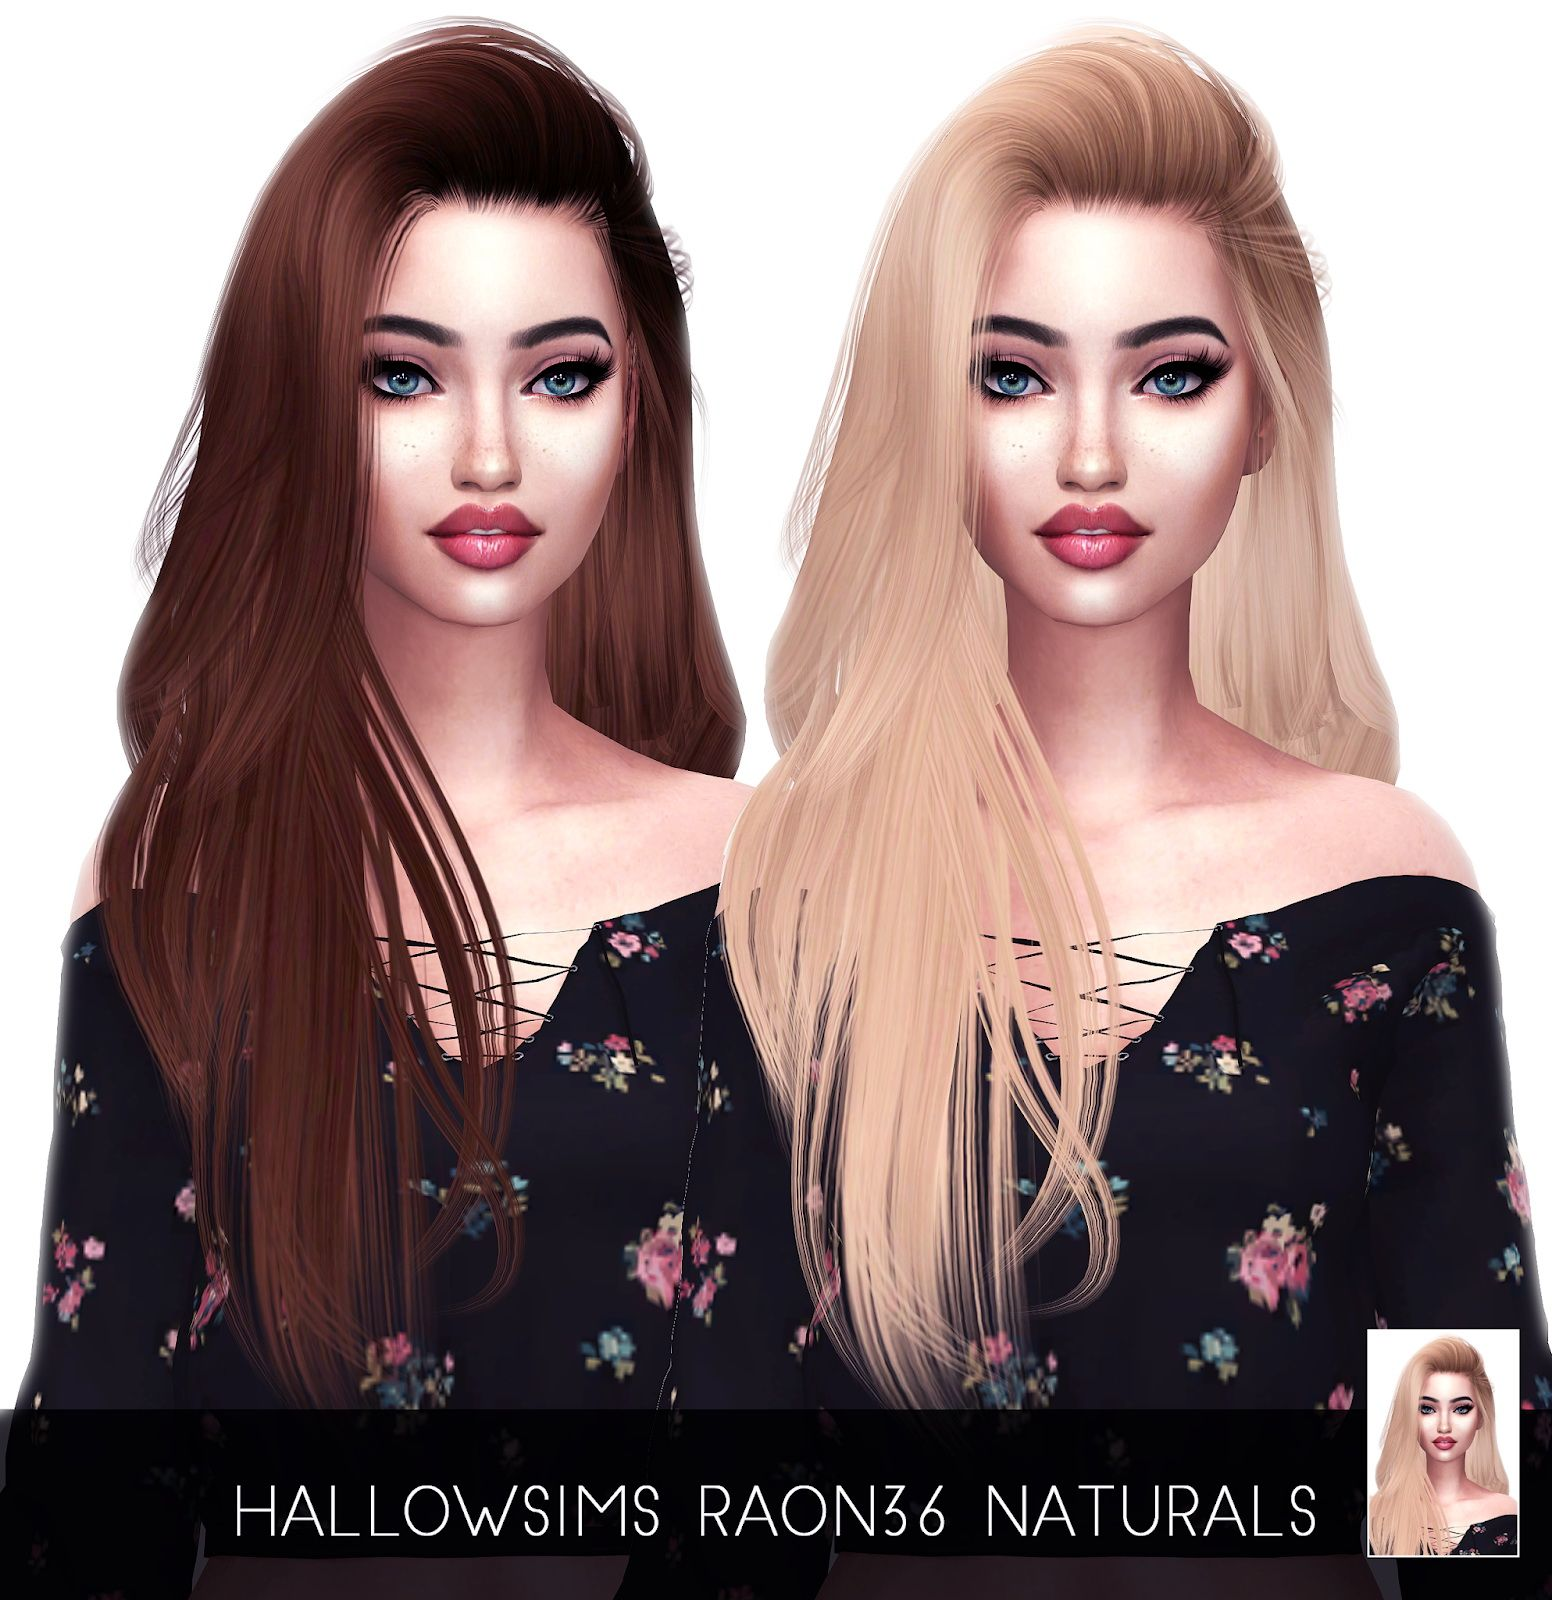 Photo of Sims 4 Hairs ~ Kenzar Sims: Raon 36 Naturals hair retextured